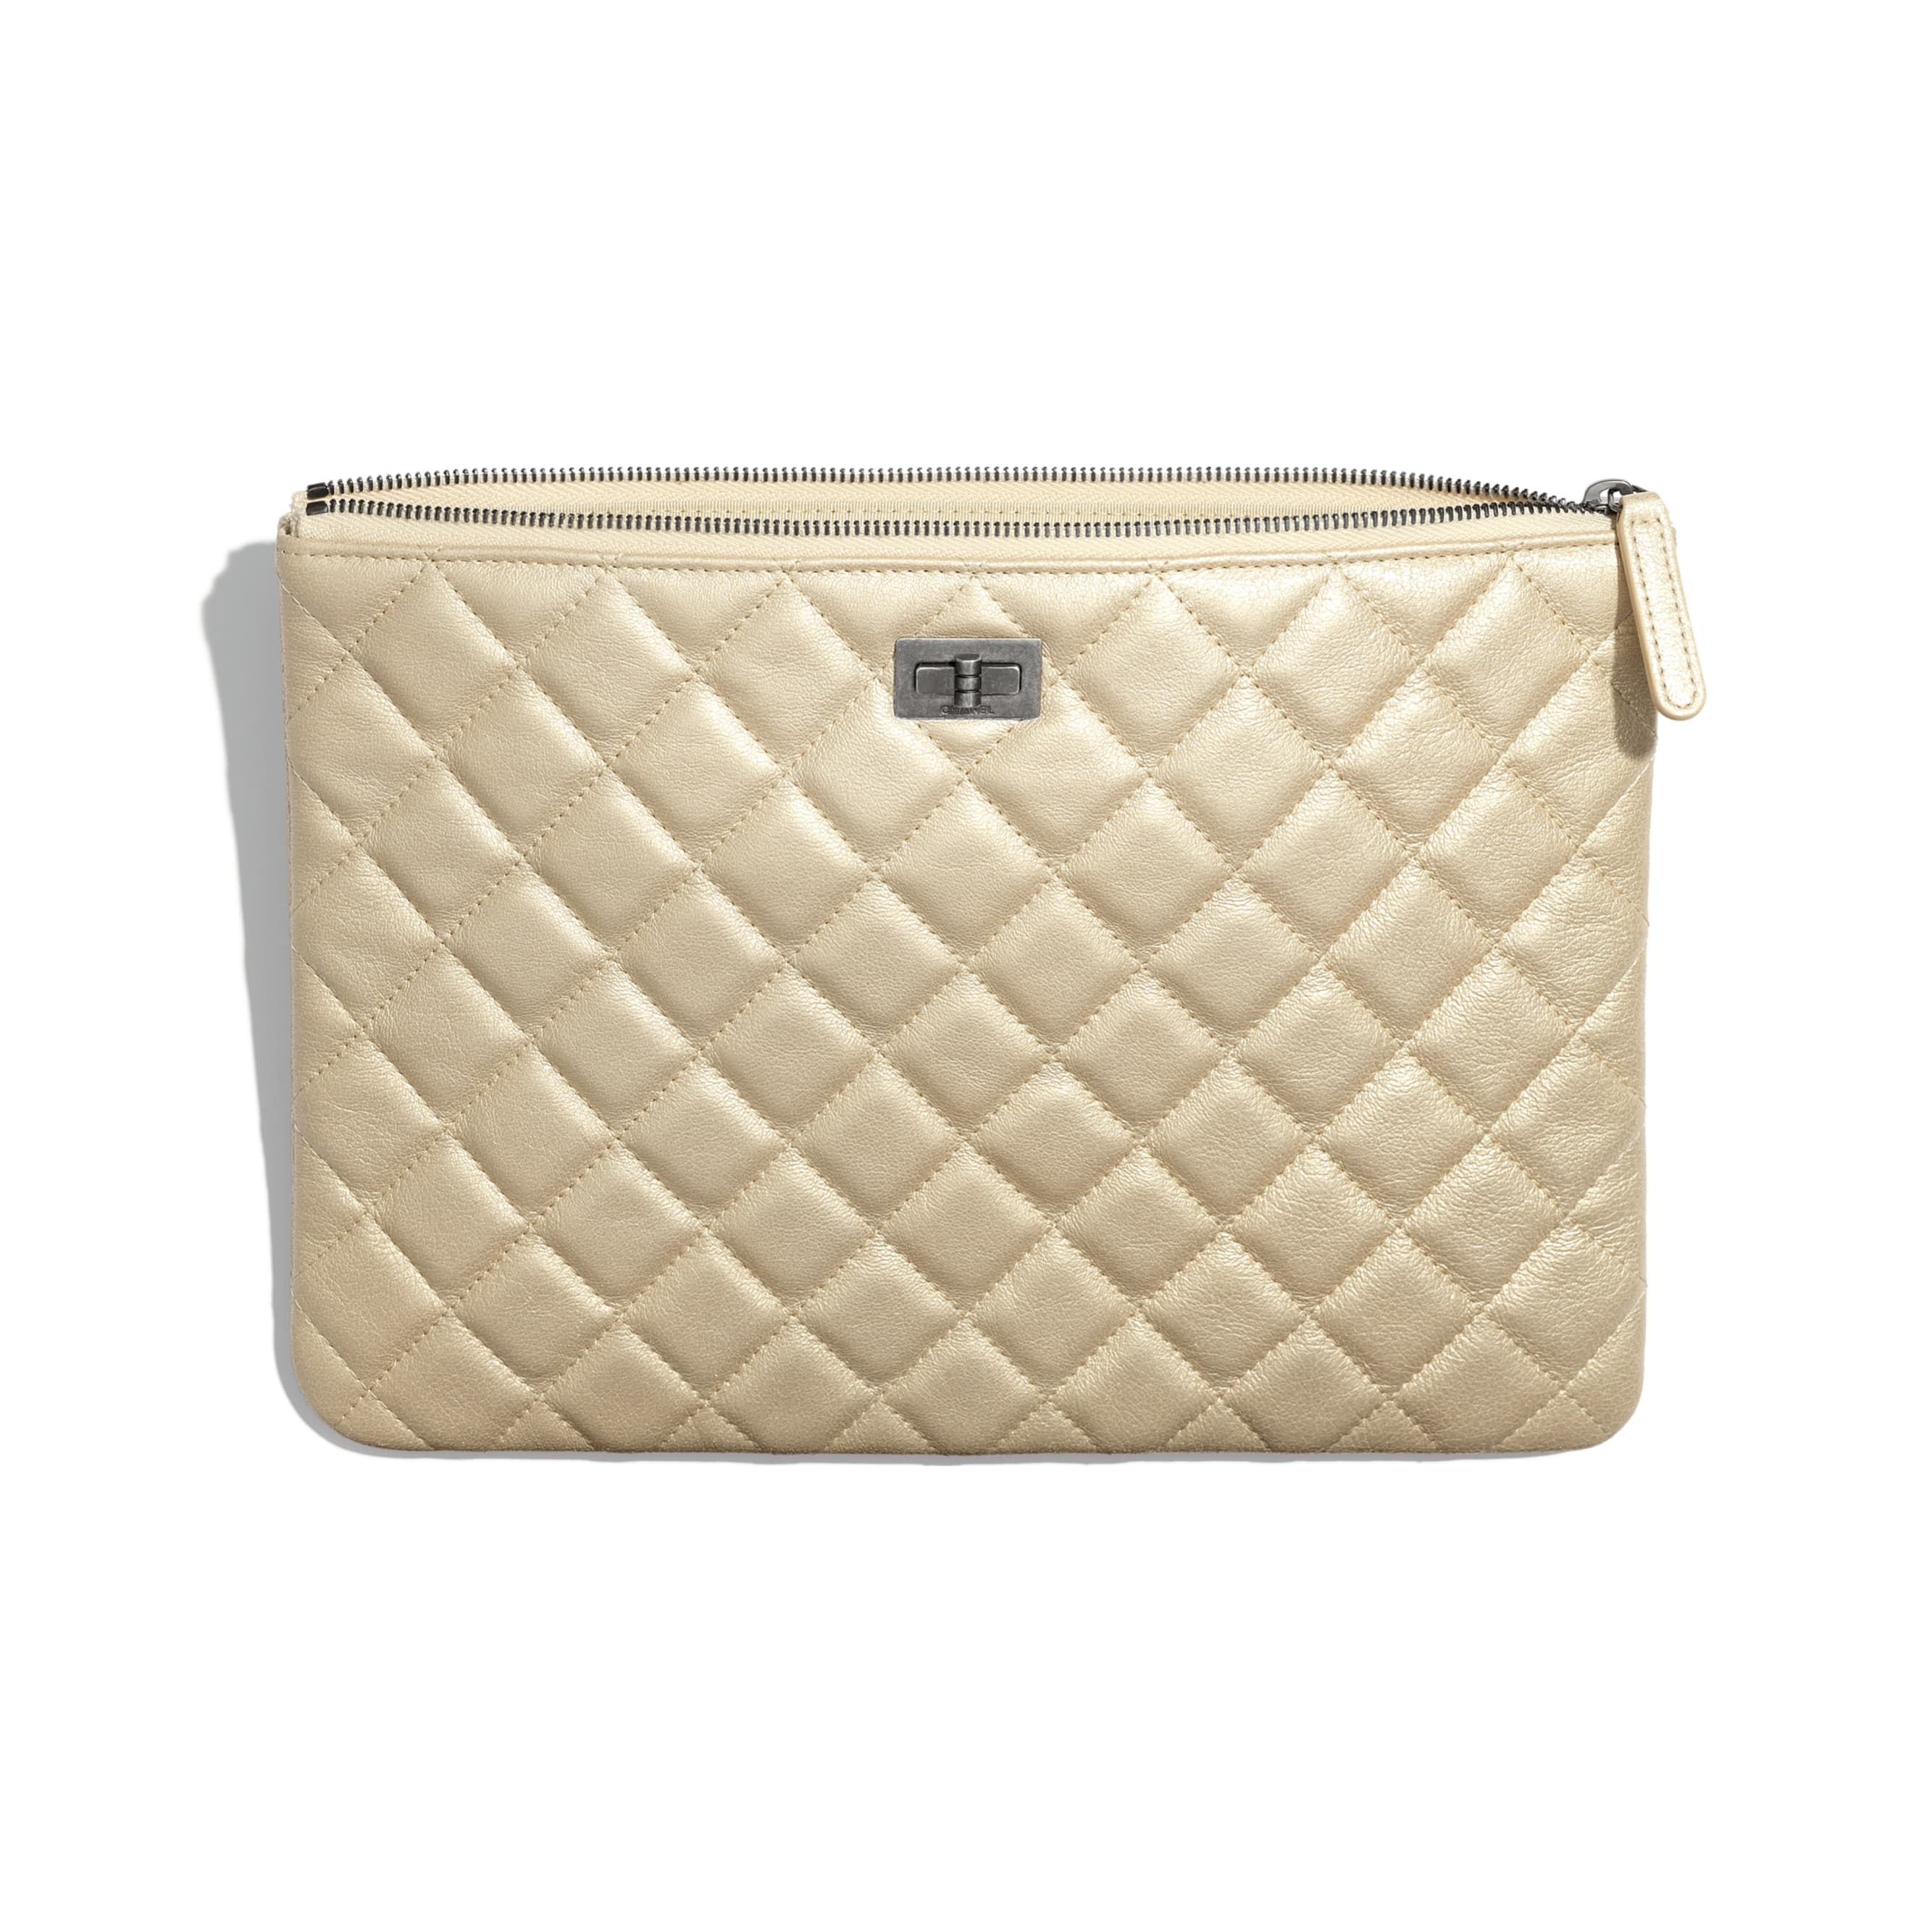 2.55 Pouch - Beige - Metallic Sheepskin & Ruthenium-Finish Metal - CHANEL - Other view - see standard sized version